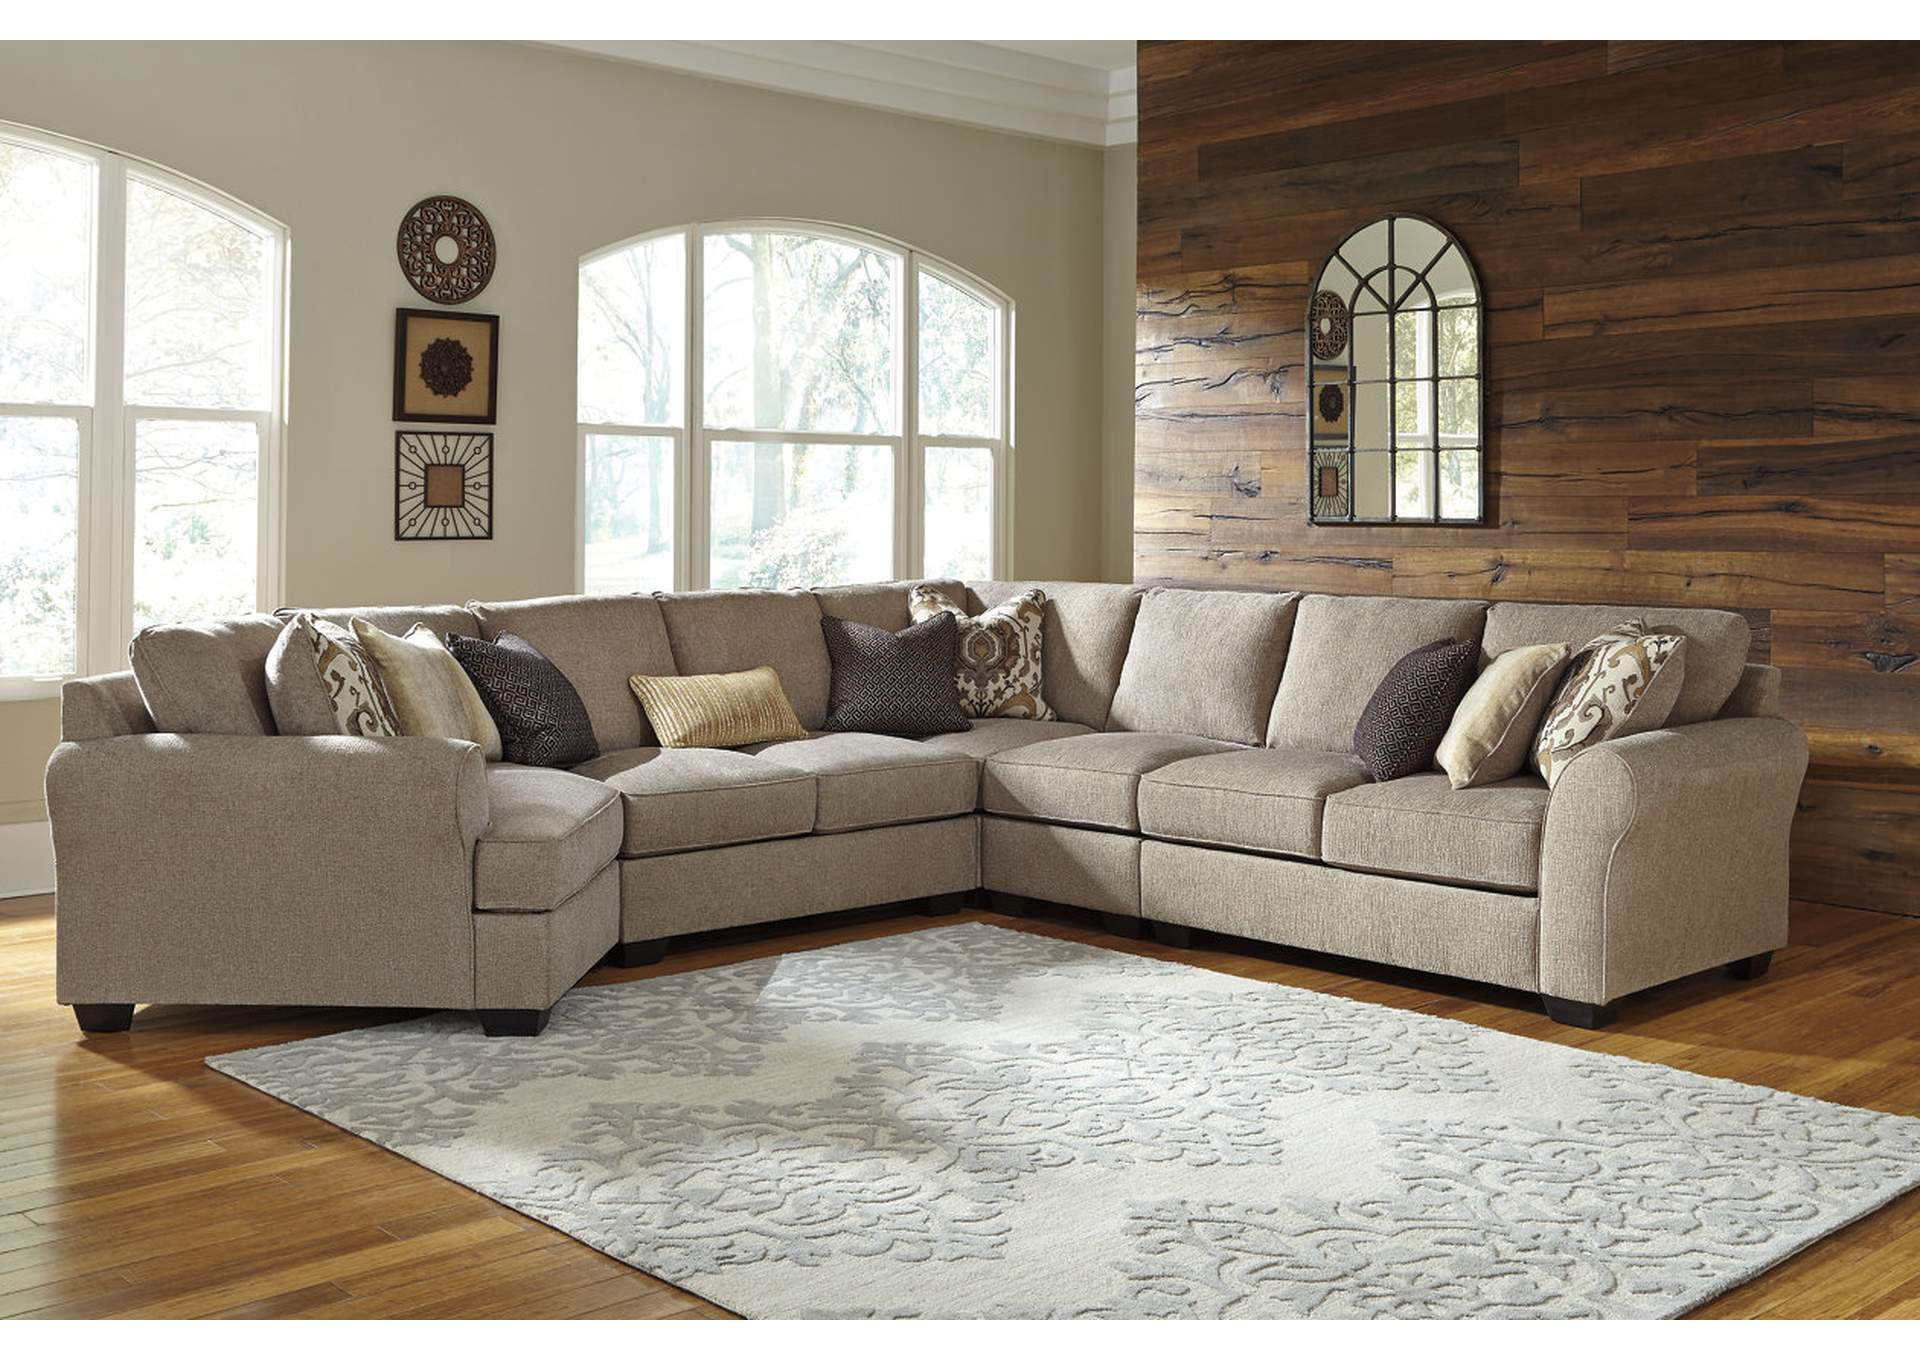 Pantomine Driftwood Extended Sectional W/Left Facing Cuddler,Benchcraft